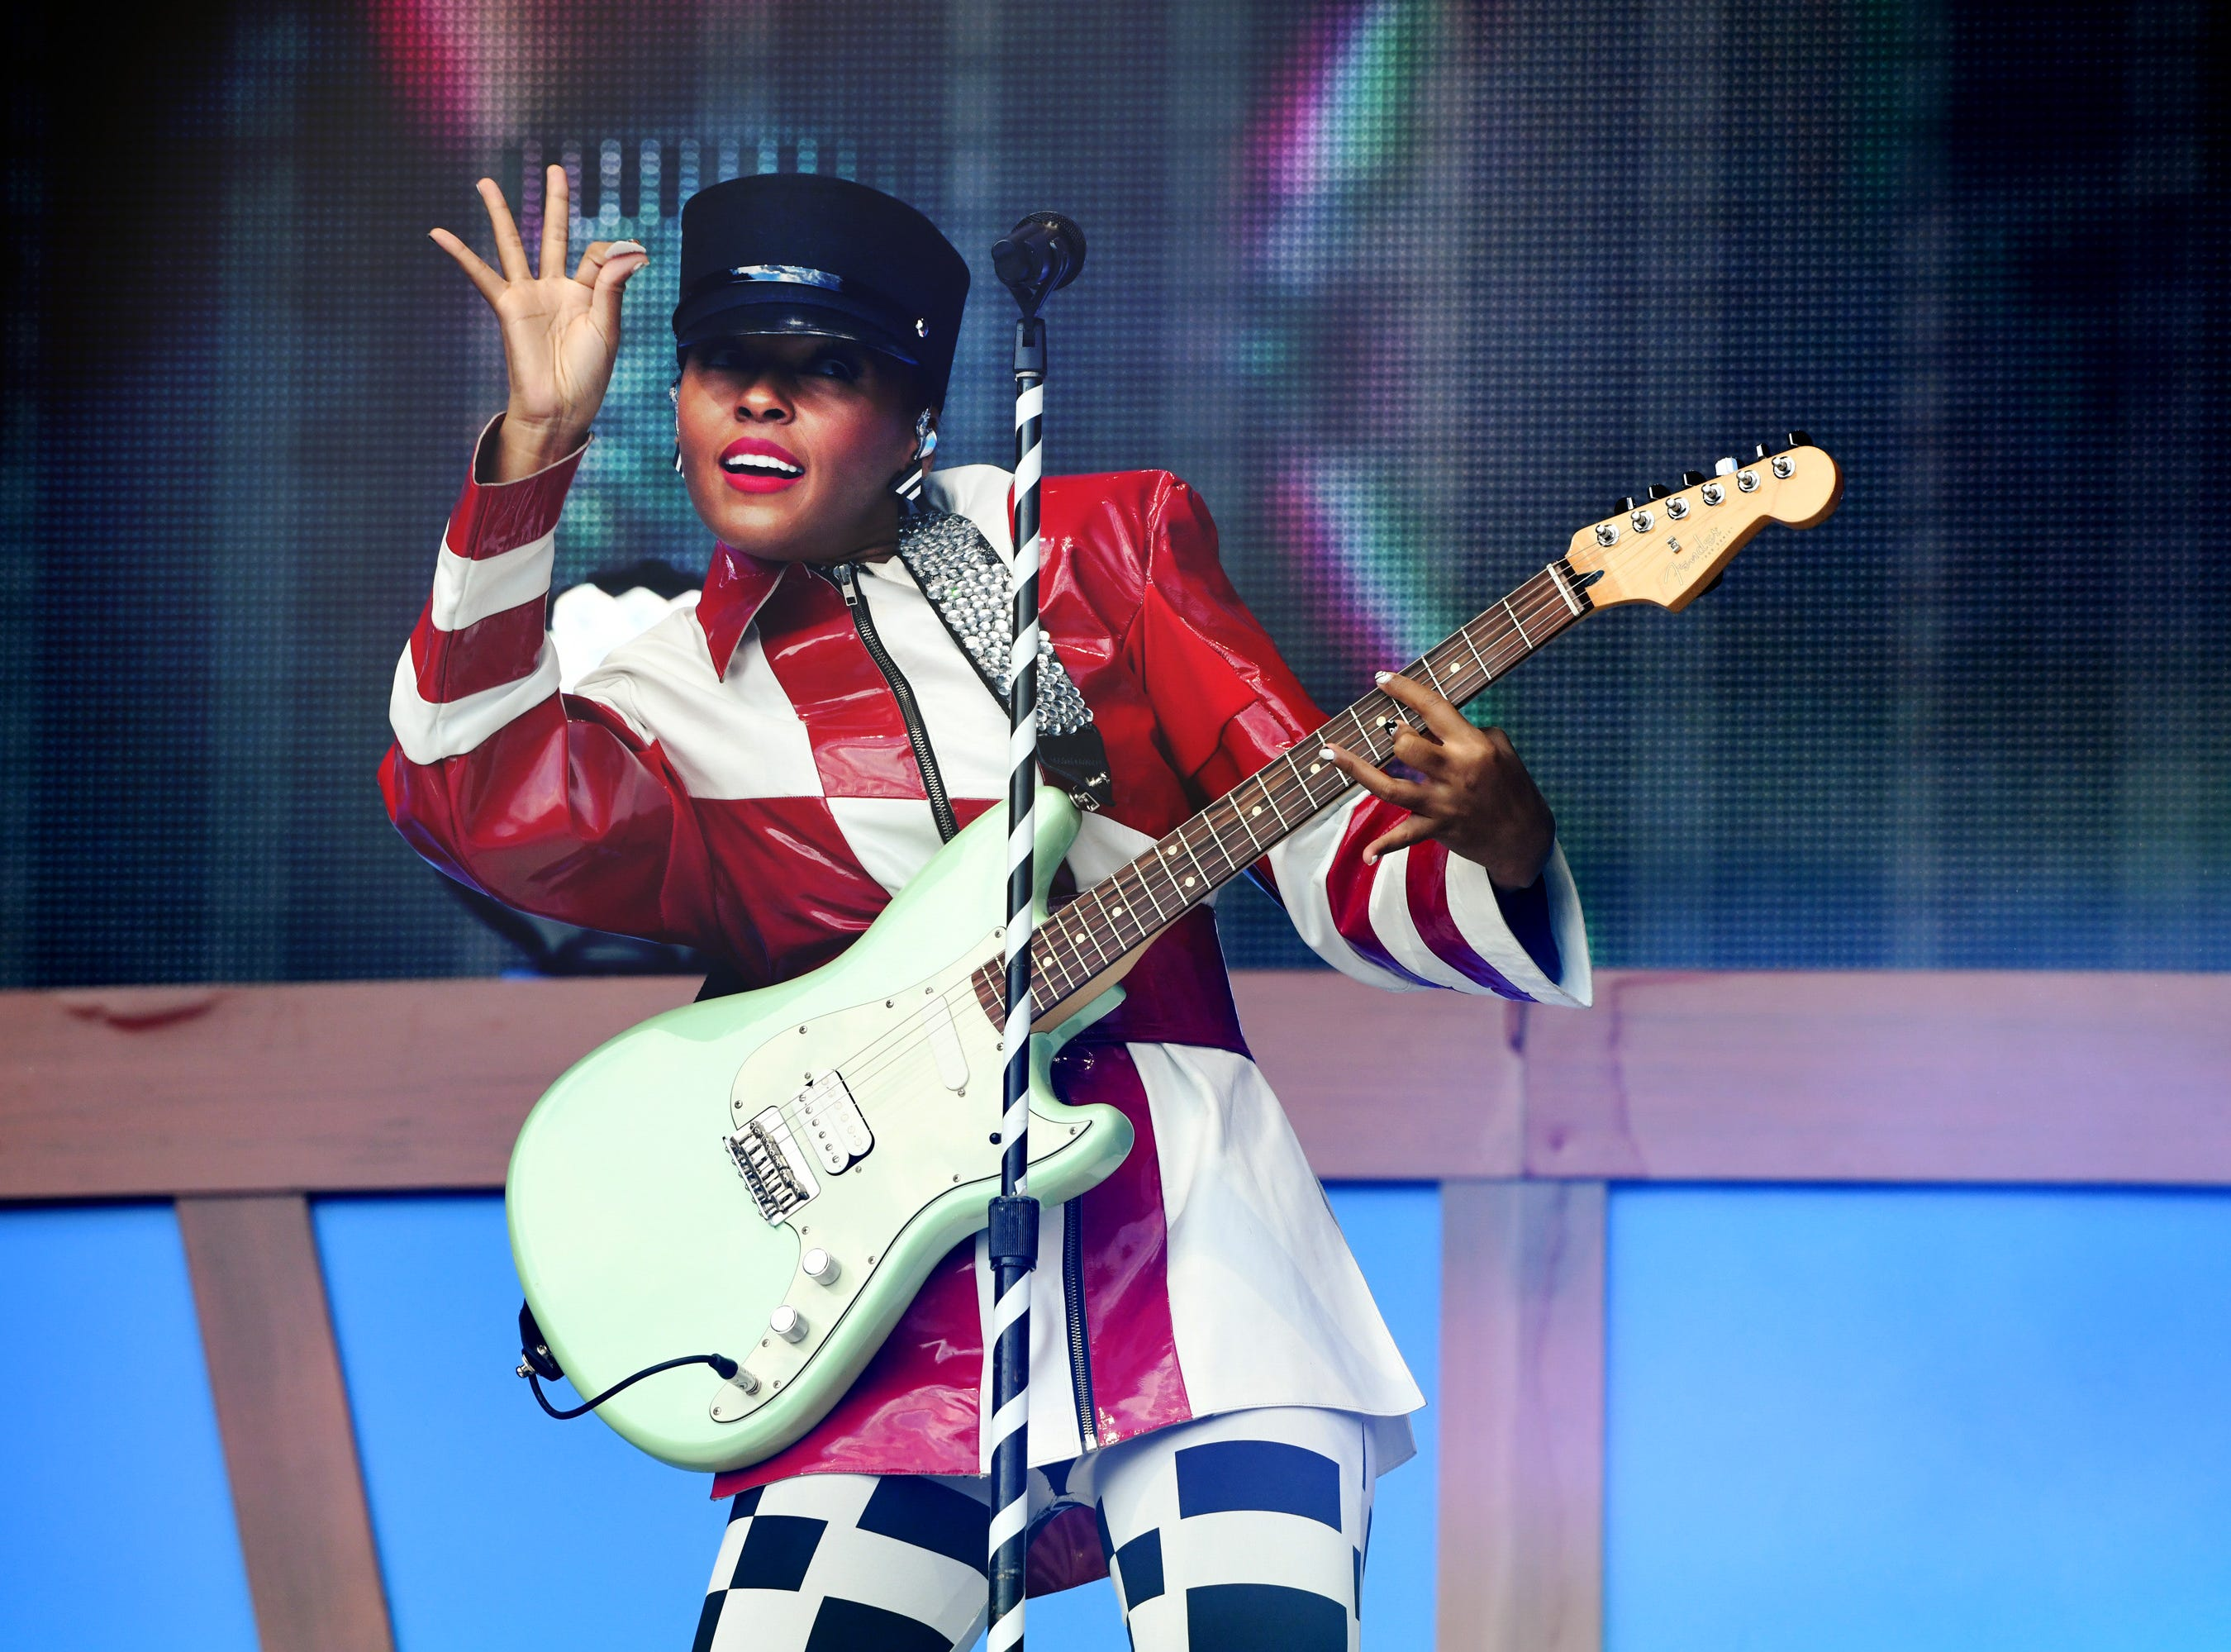 NEW YORK, NY - SEPTEMBER 29:  Singer-songwriter Janelle Monáe performs onstage during the 2018 Global Citizen Concert at Central Park, Great Lawn on September 29, 2018 in New York City.  (Photo by Michael Kovac/FilmMagic) ORG XMIT: 775235423 ORIG FILE ID: 1043263512